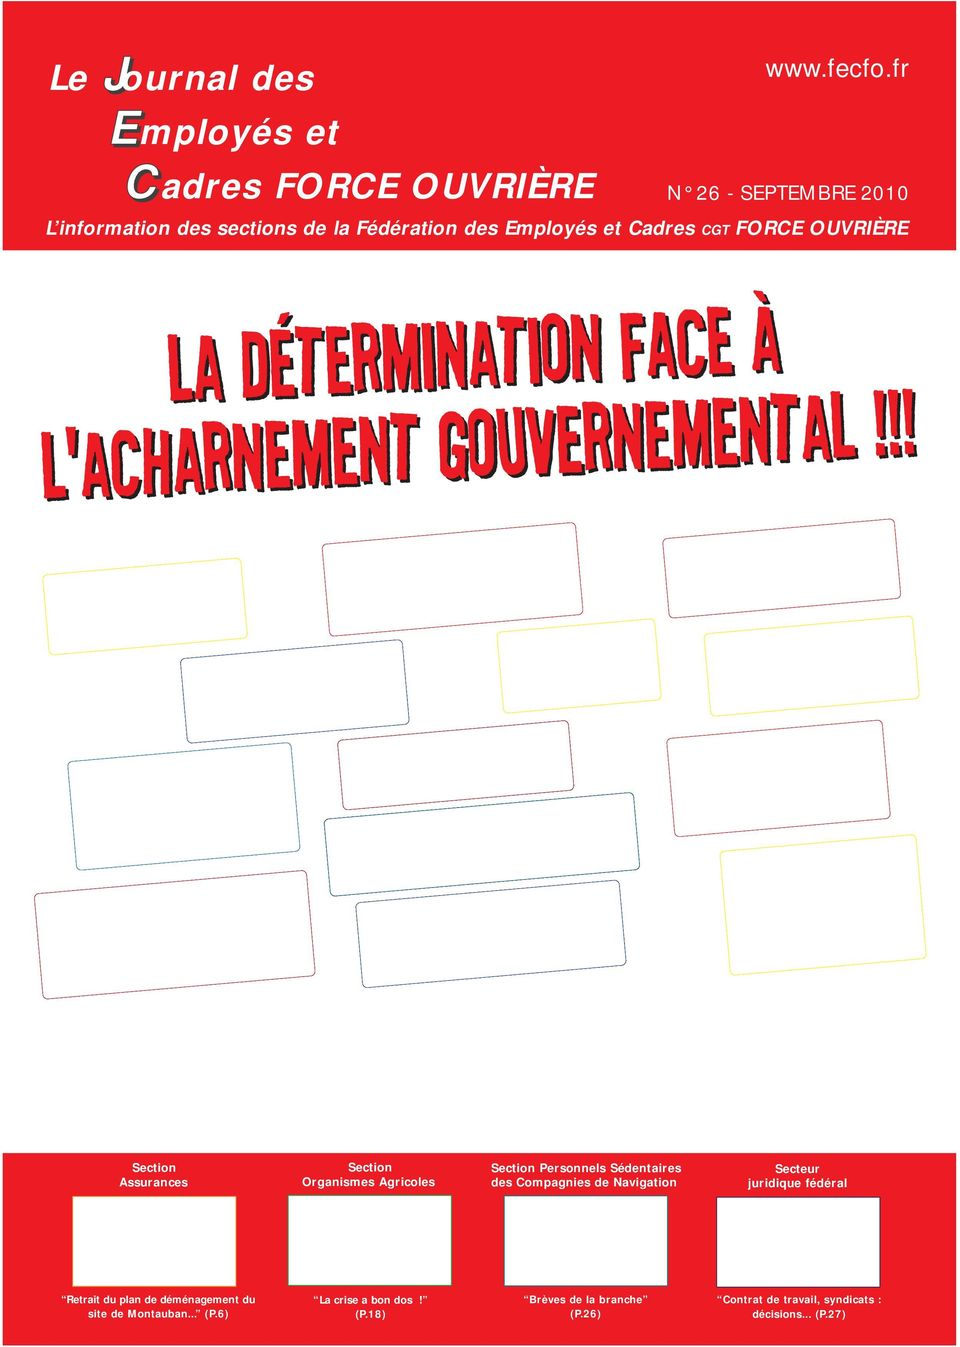 face à l'acharnement gouvernemental!